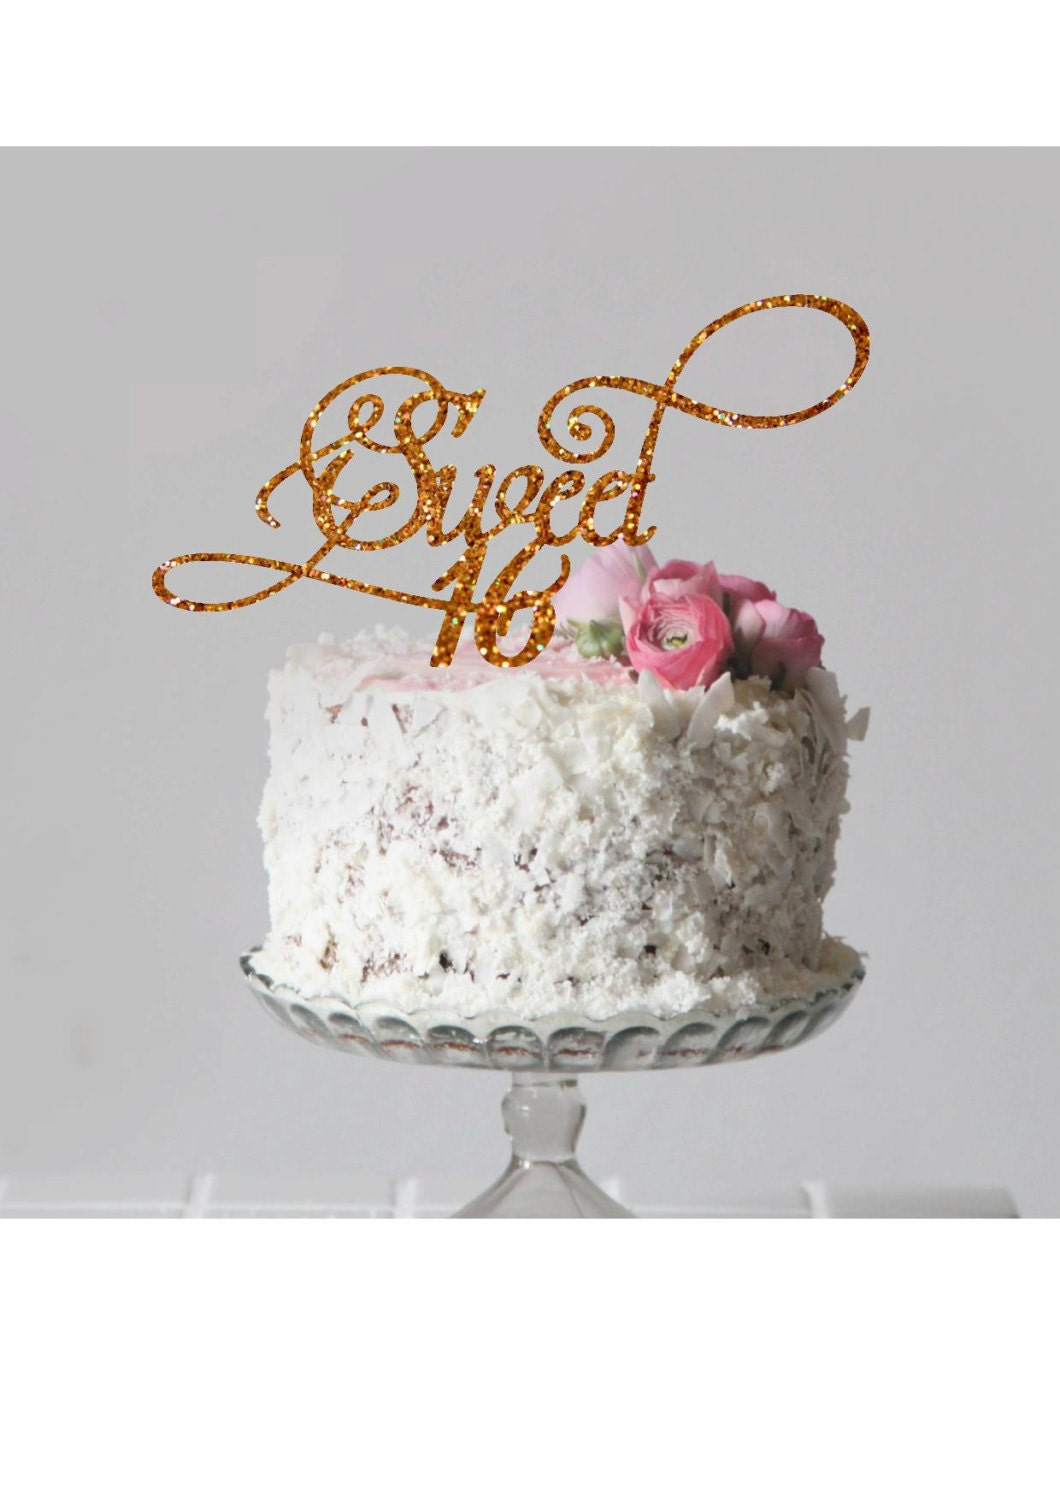 Happy Sweet 16 To Dylan S Candy Bar: Sweet 16 Cake Topper Happy Birthday Cake Topper Sweet Sixteen